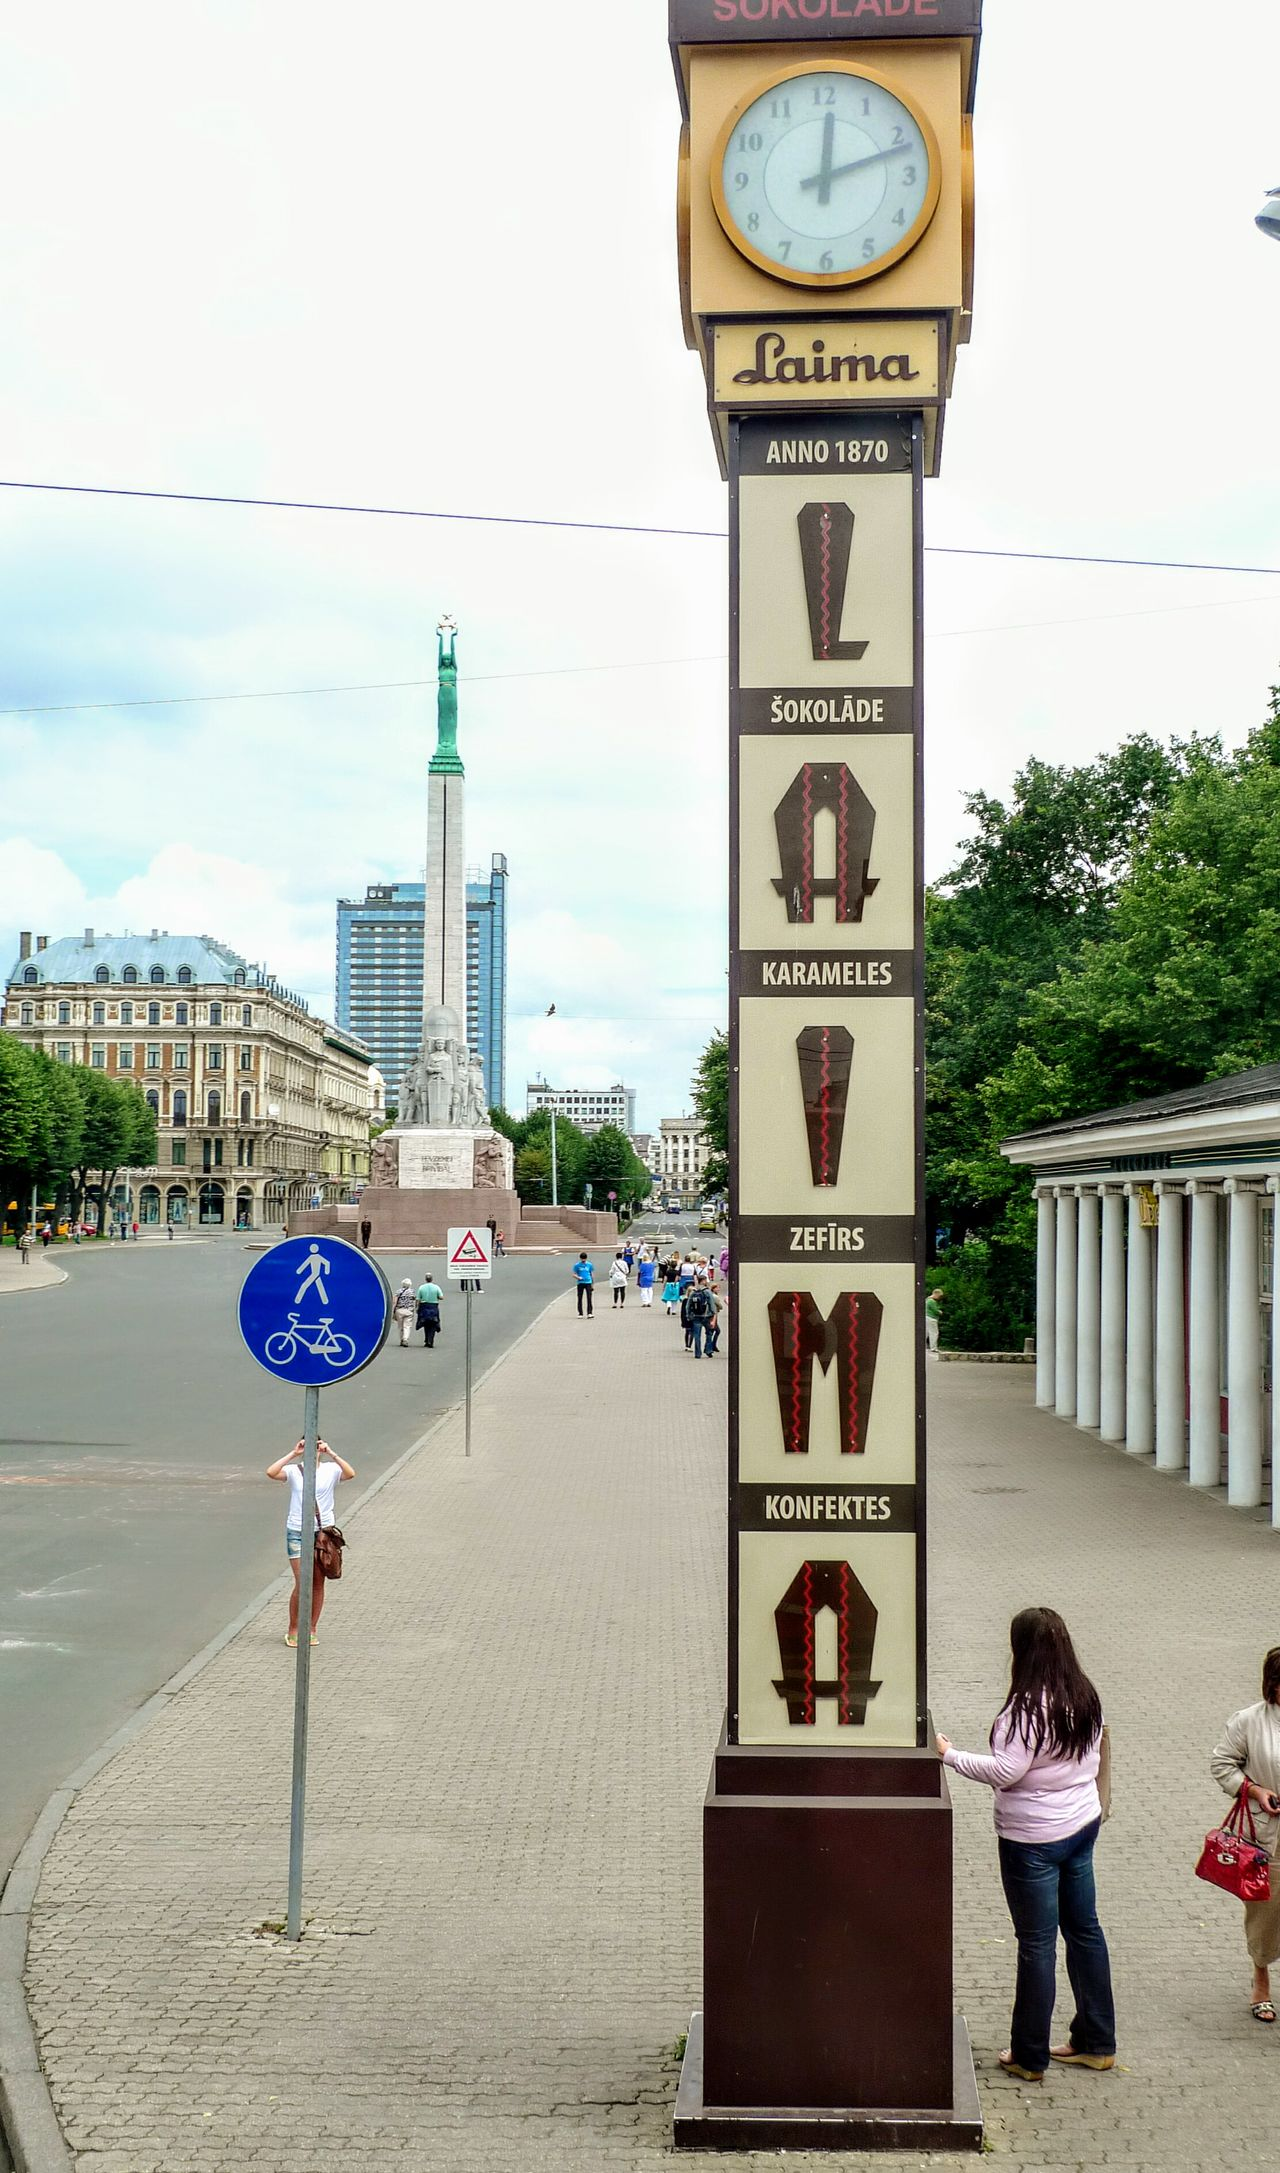 Historic clocktower in Riga, Latvia. Baltic countries Outdoors People Road Sign Sky Adult Baltic Countries Clock Riga City Street Baltic Countries Latvia Latvia Riga City Urban Monument Advertisments Laima Sweets 1924 liberty monument Liberty Monument